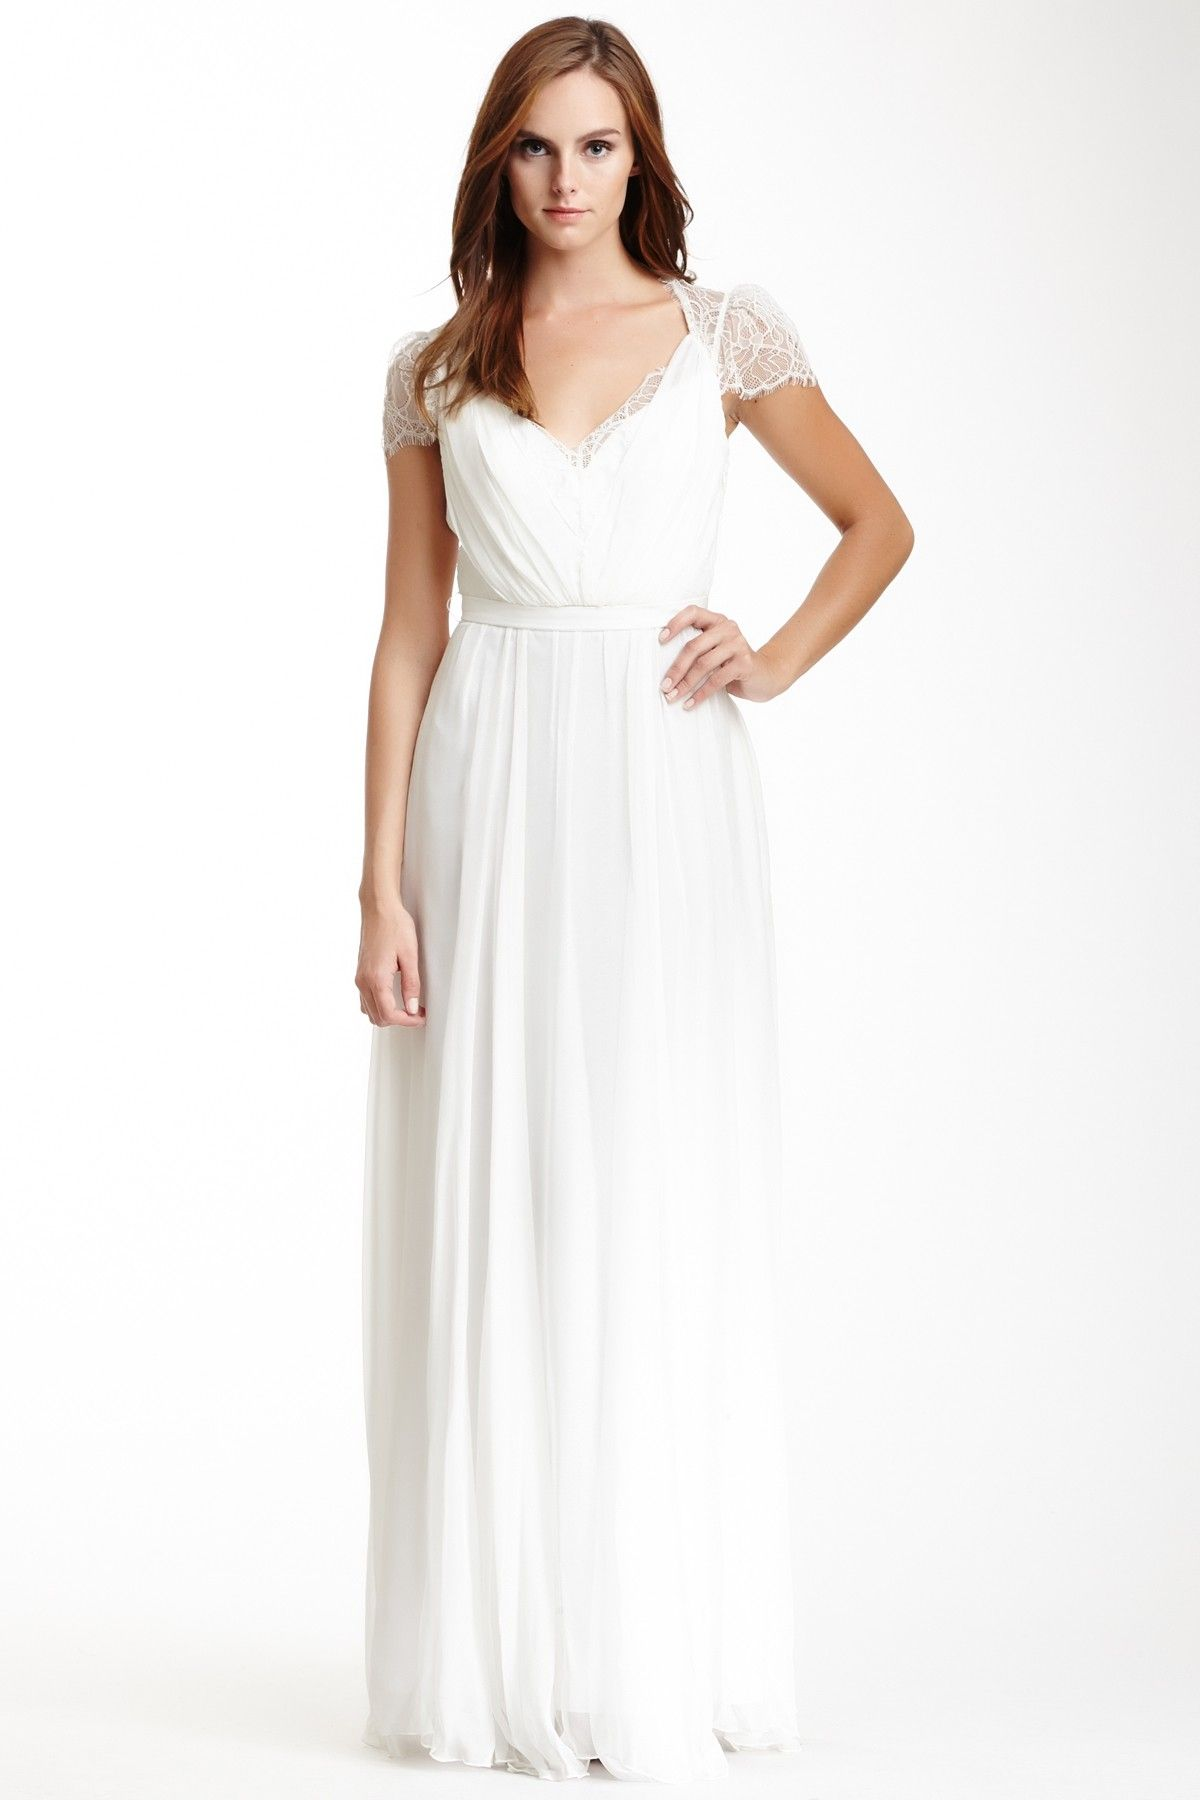 Lace bodice gathered gown with lace cap sleeves modest wedding